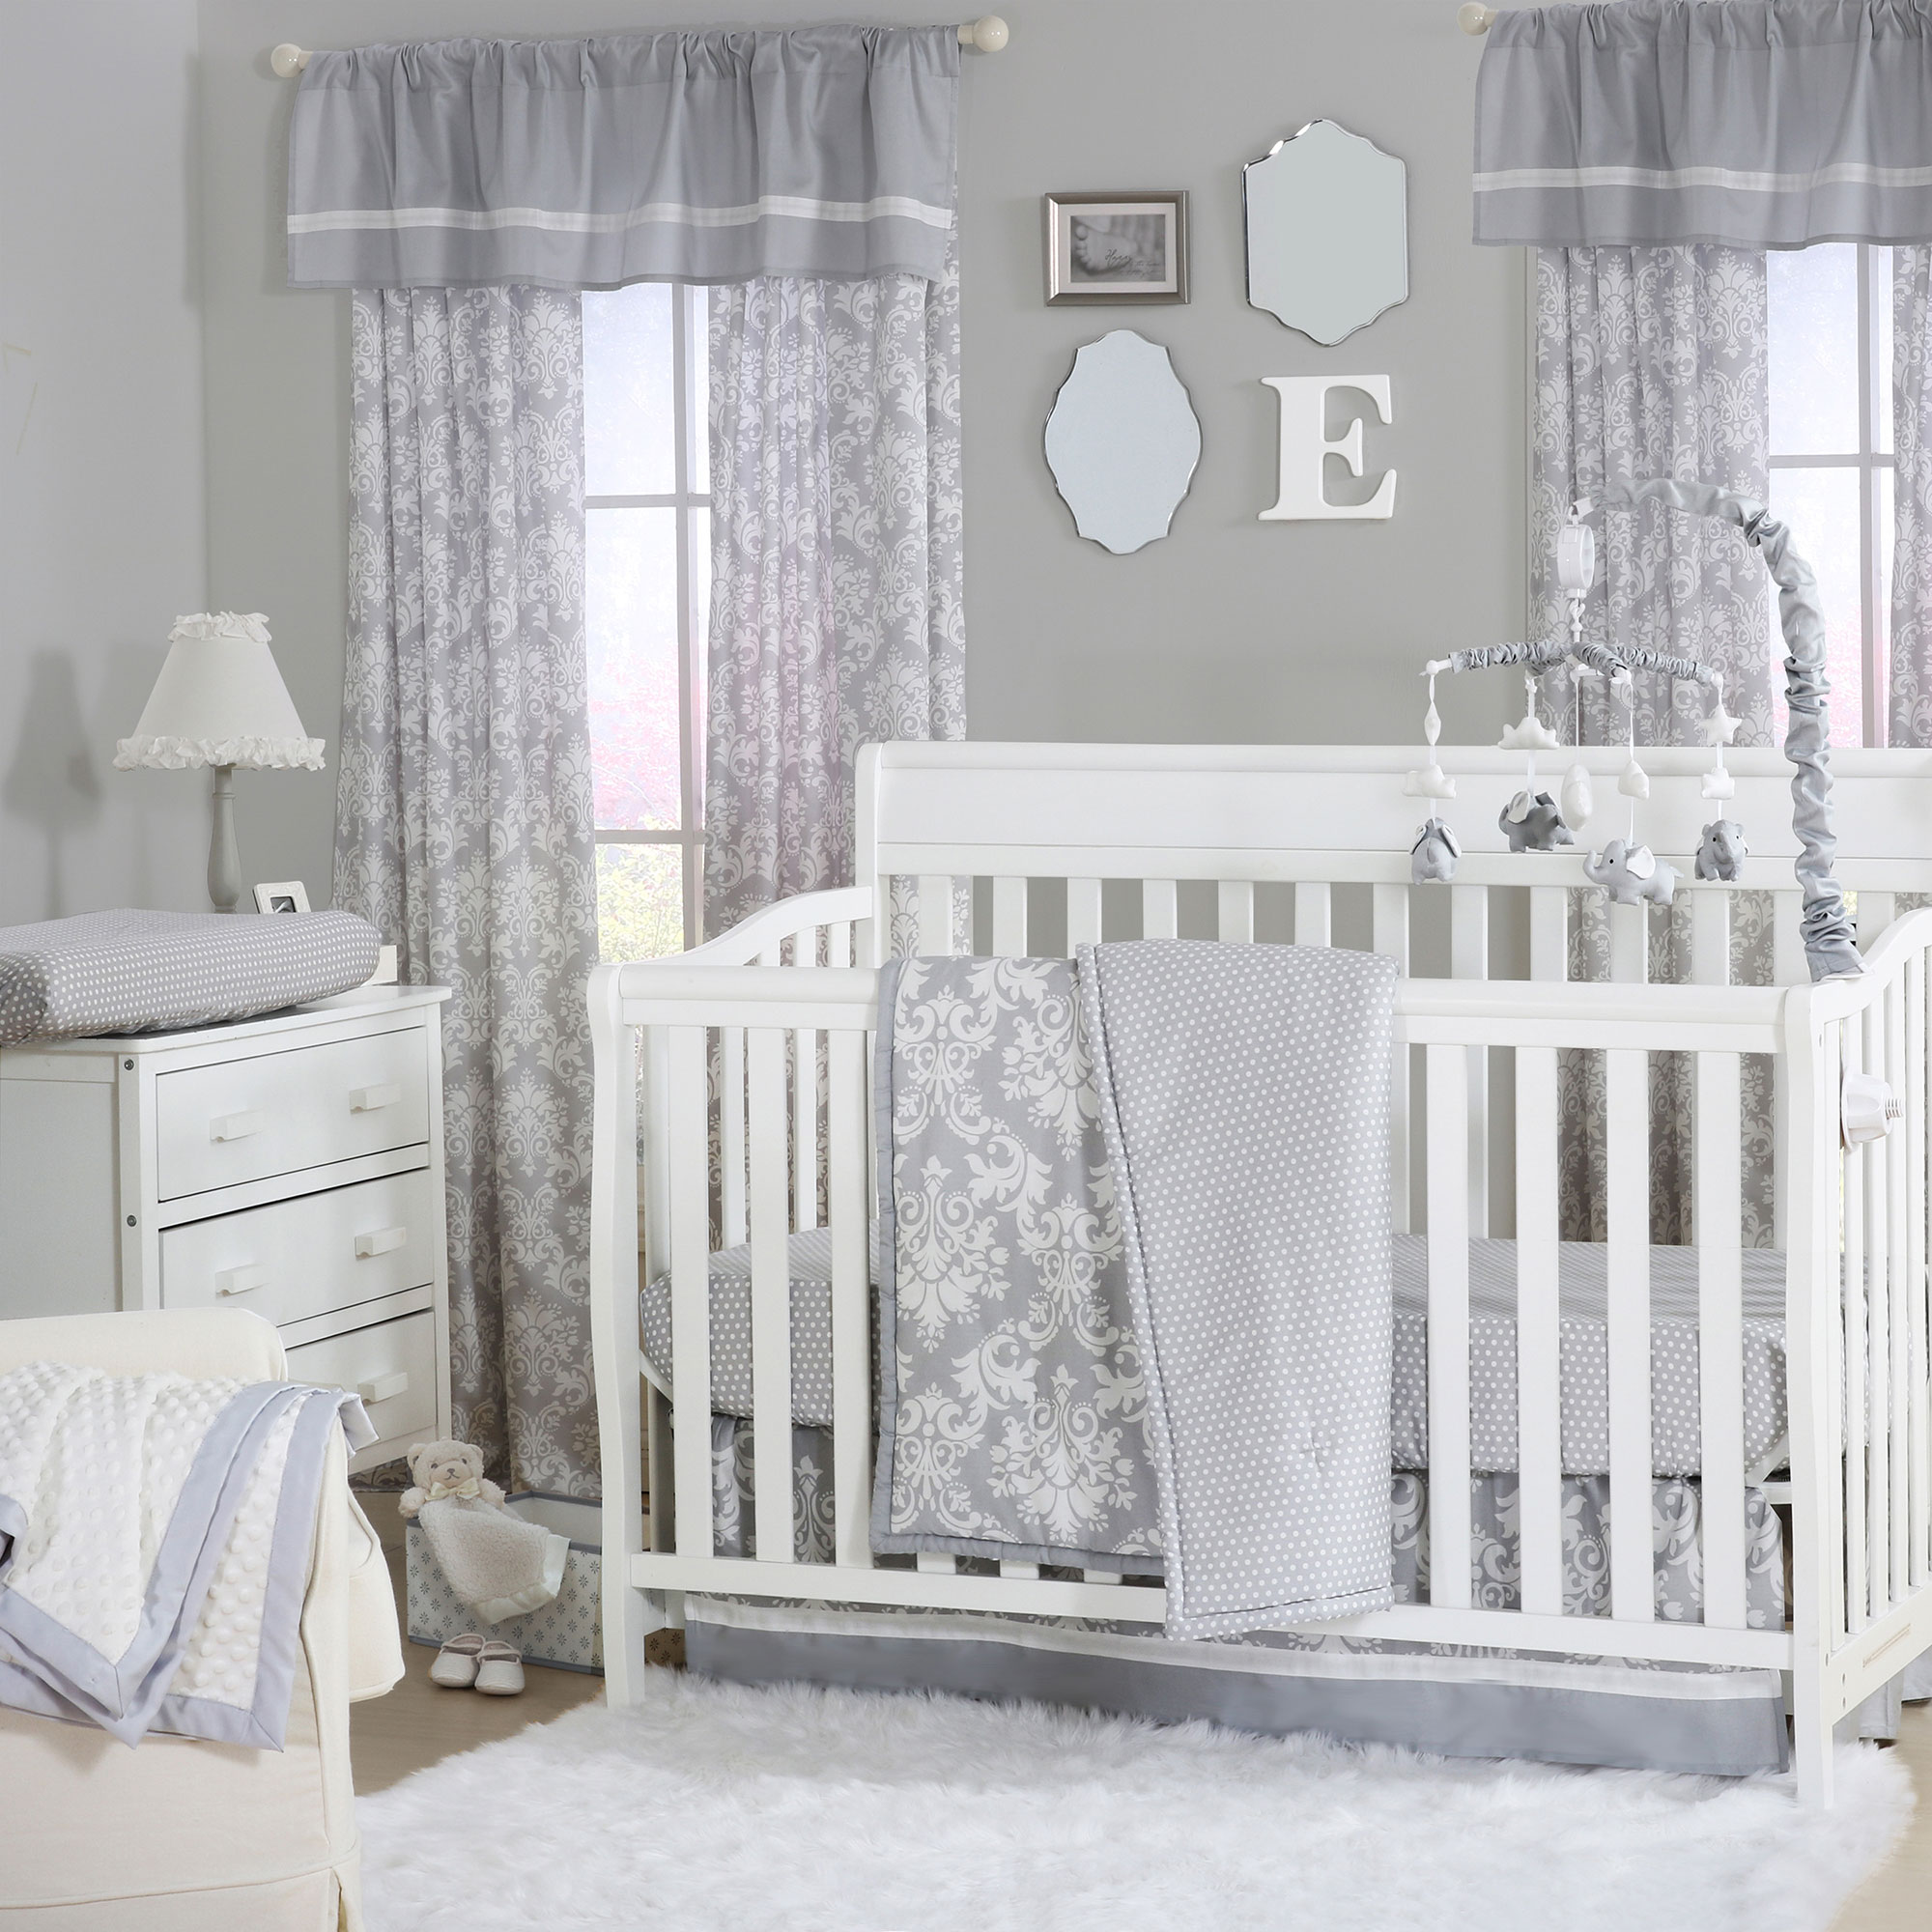 The Peanut Shell 4 Piece Baby Crib Bedding Set - Grey and White Damask and Polka Dot Prints - 100% Cotton Quilt, Dust Ruffle, Fitted Sheet, and Mobile